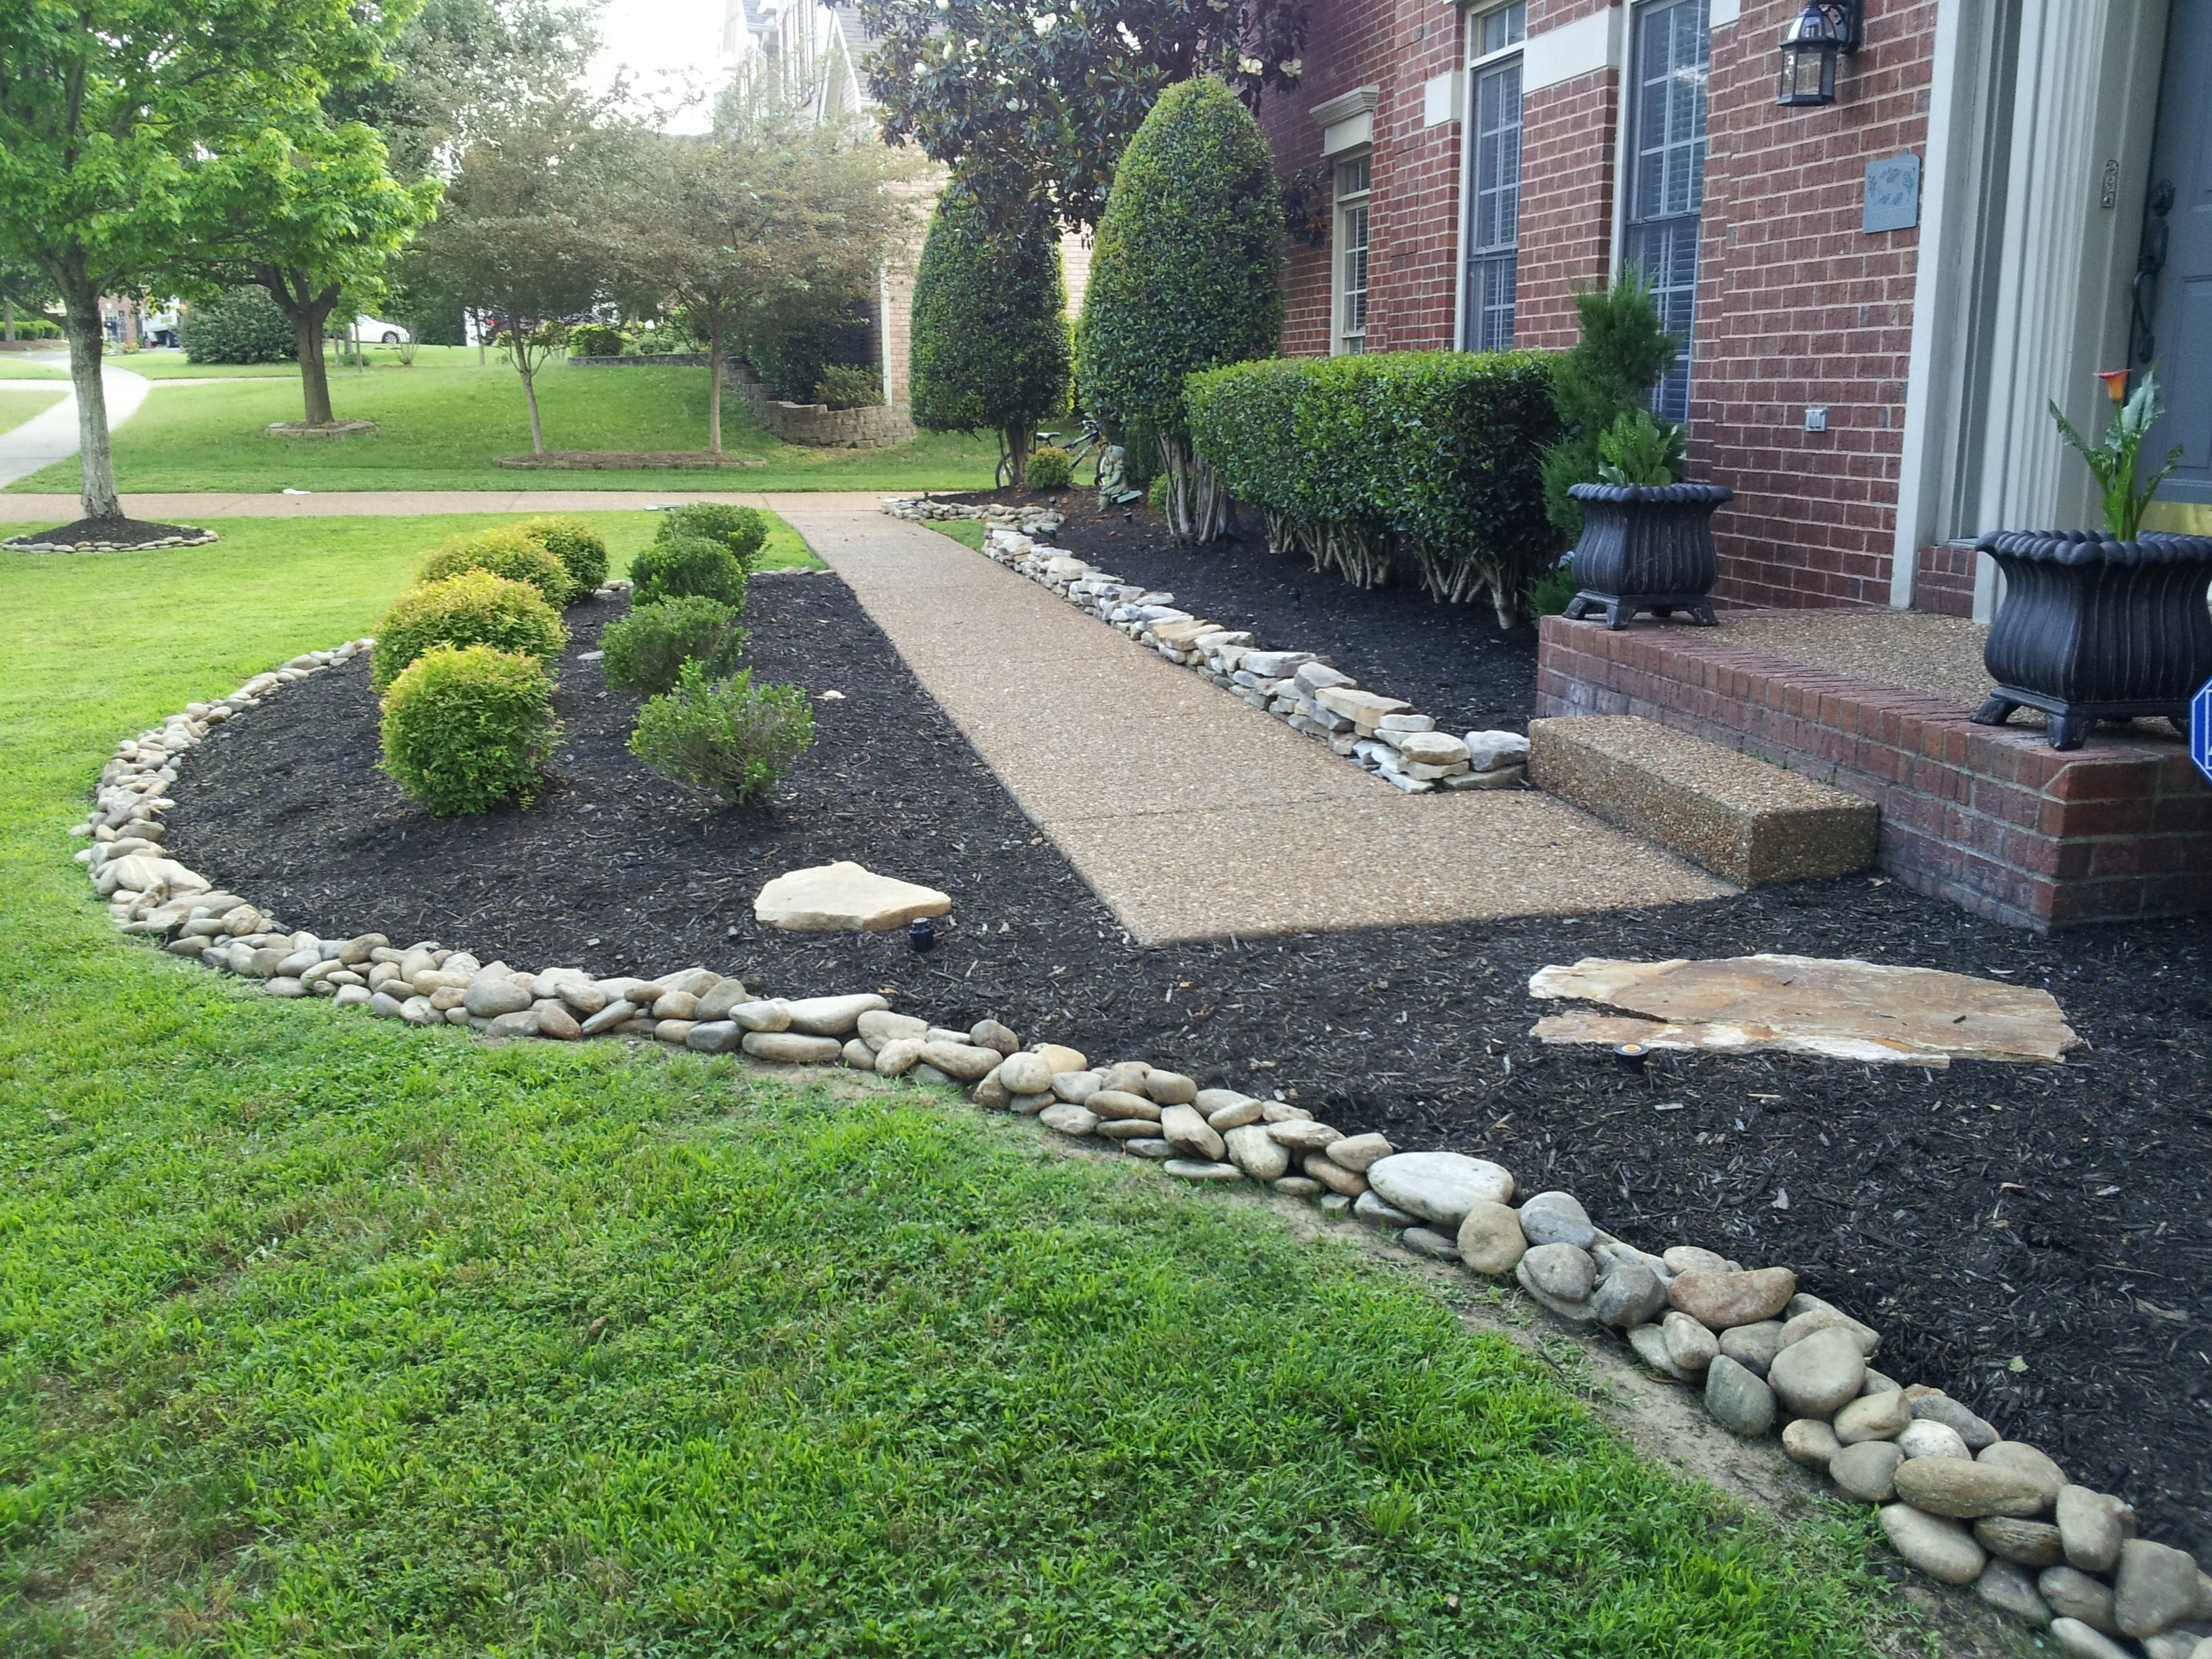 17 Best ideas about Rock Border on Pinterest Flower bed edging